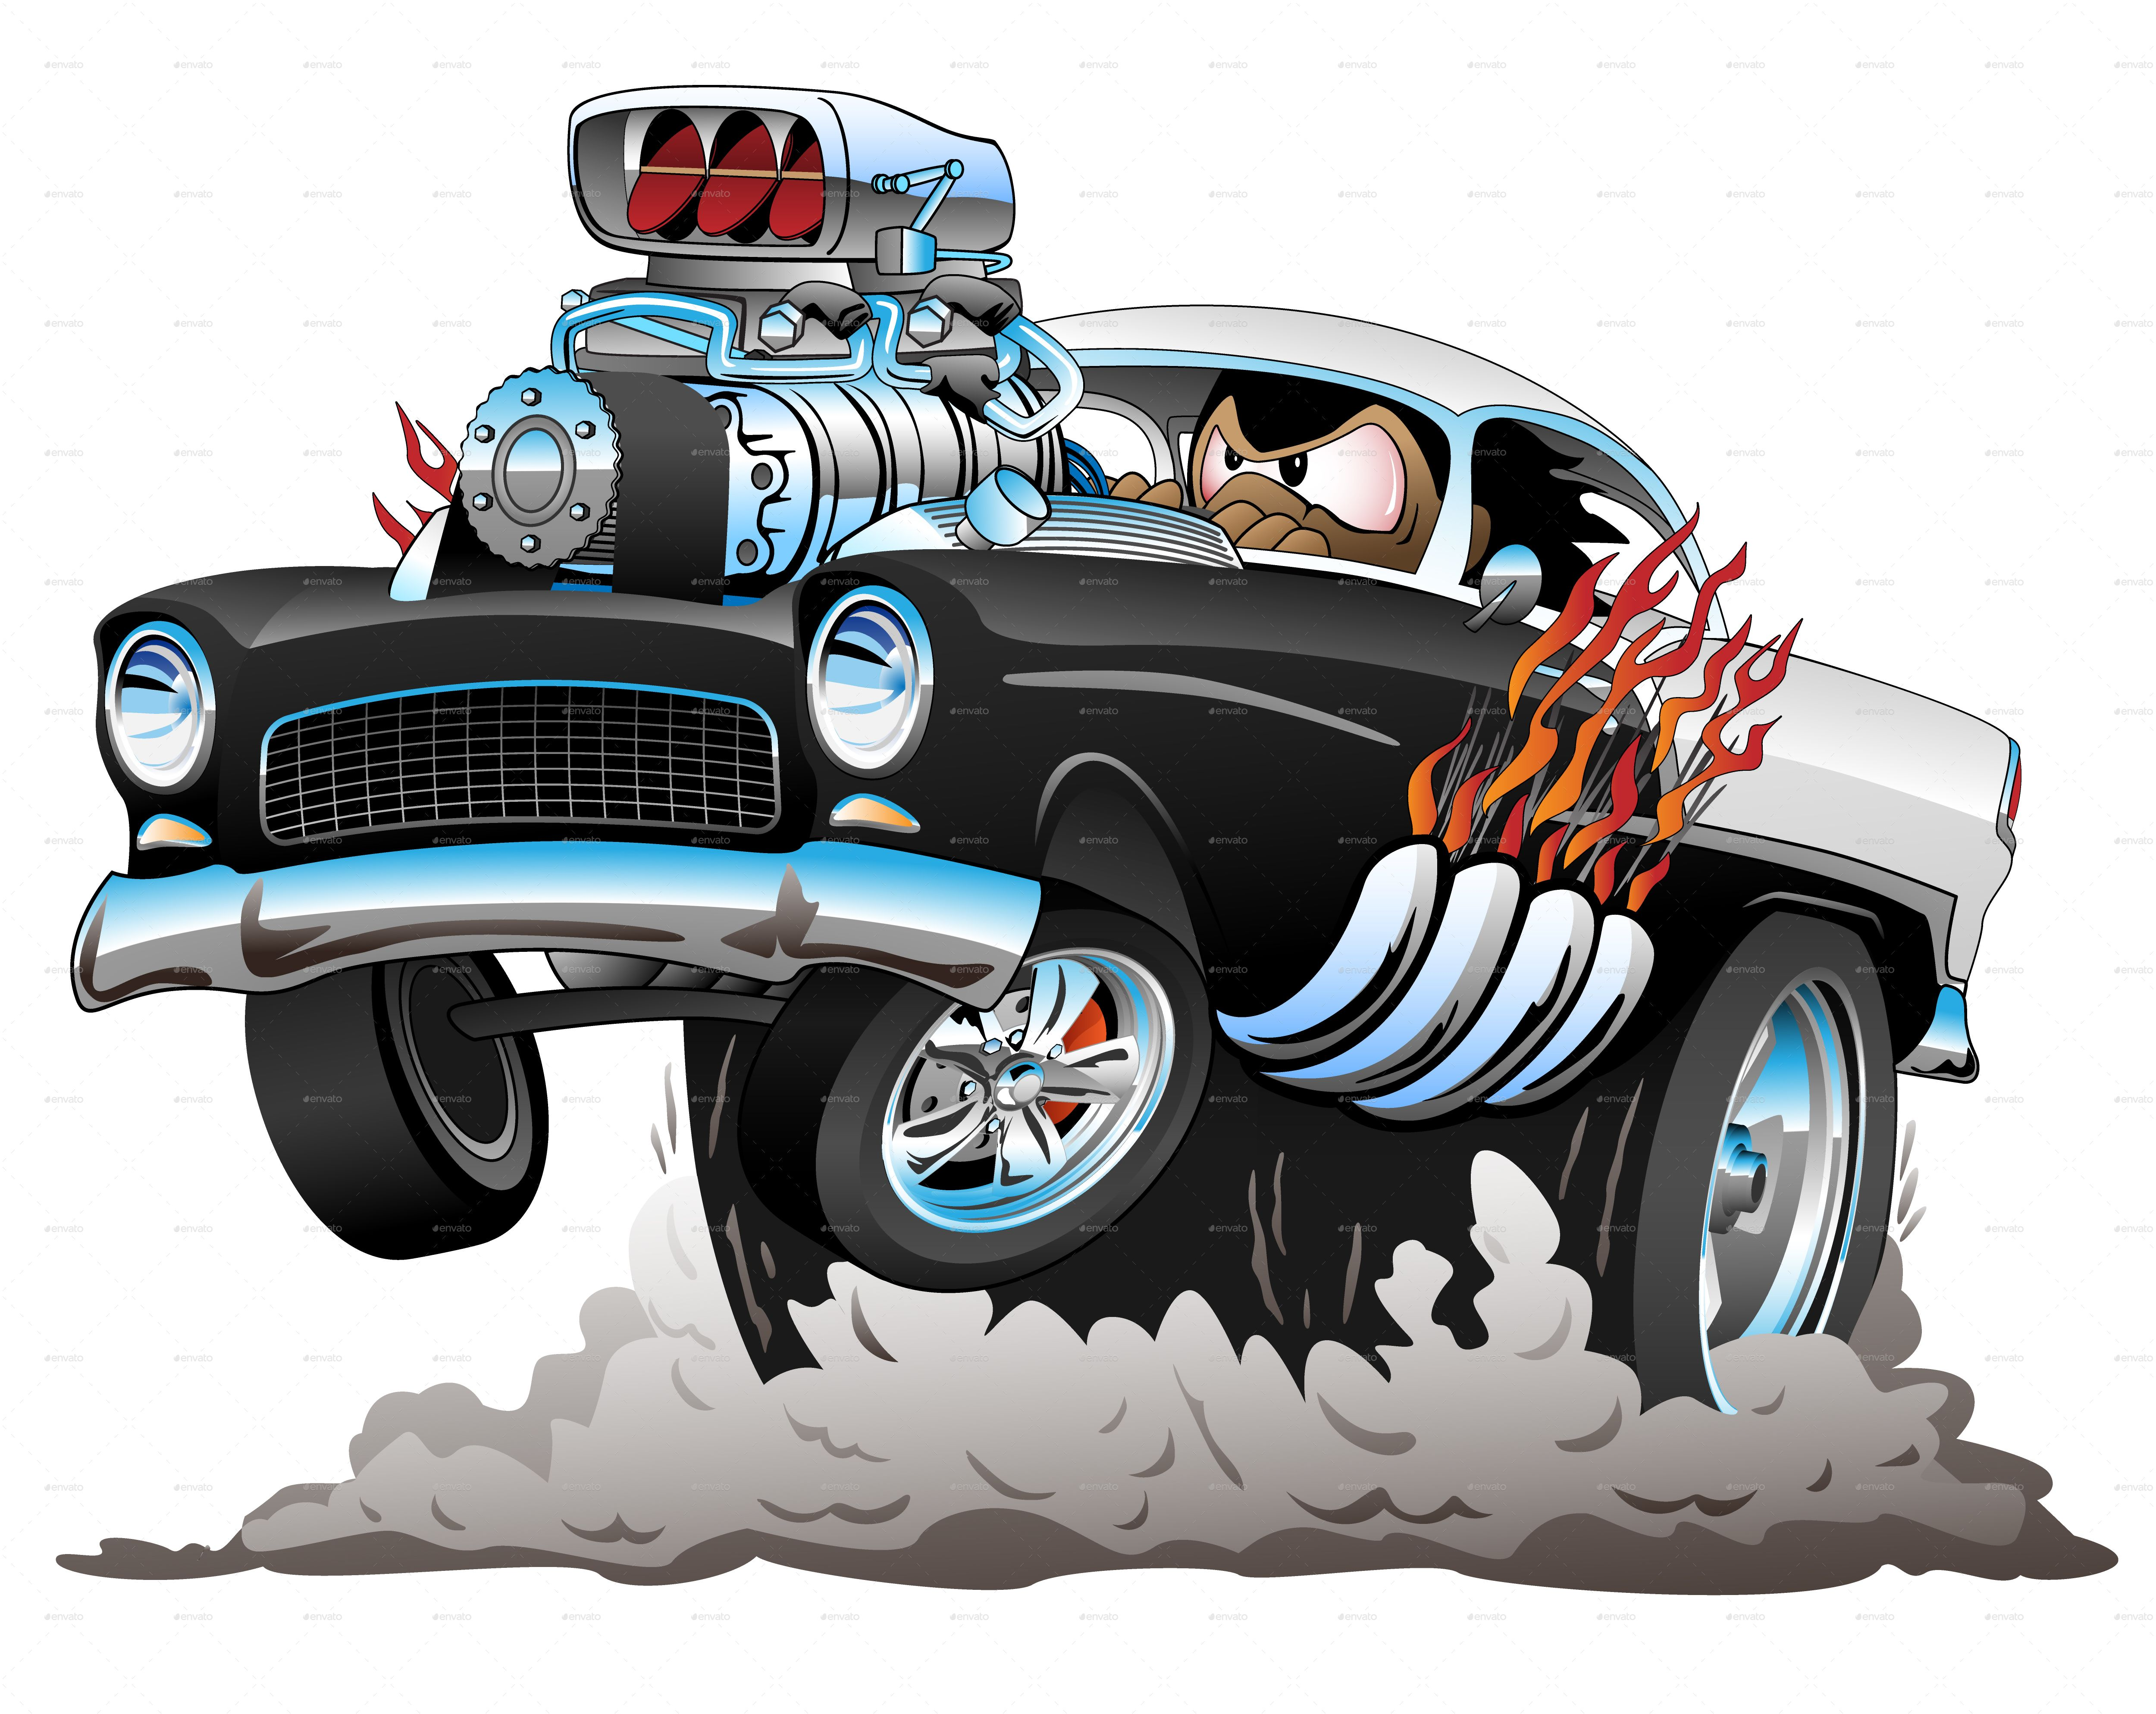 Old Car Cartoon Vector Illustration Cartoon Car Illustration Vector Car Cartoon Cool Car Drawings Car Humor